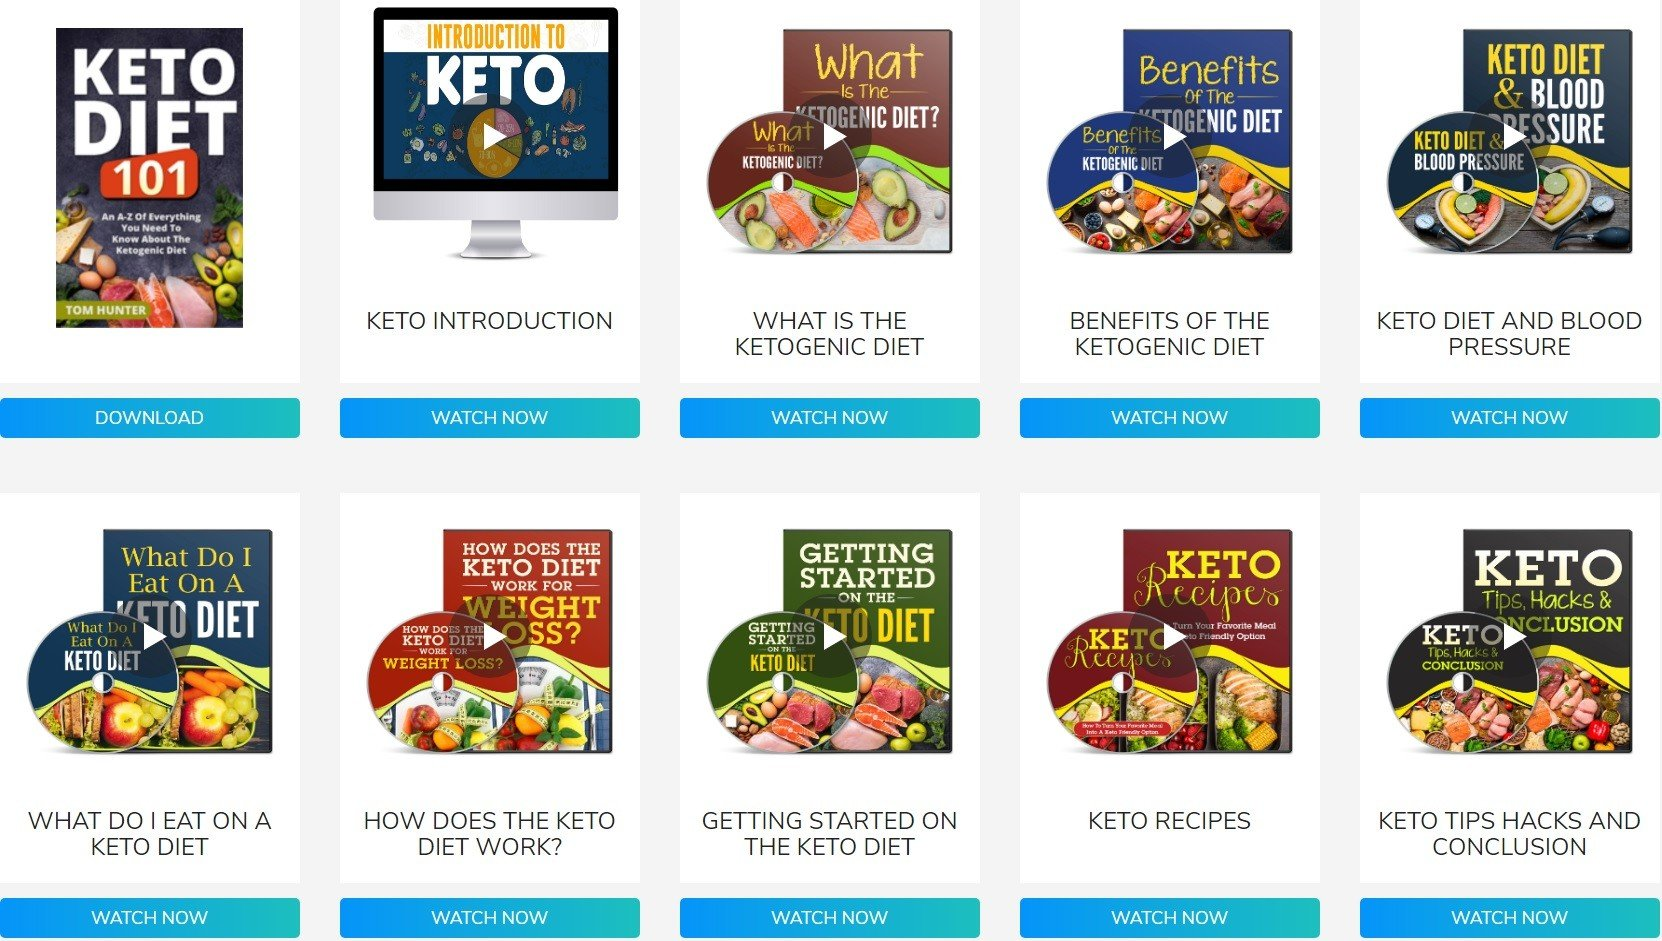 For Sale Facebook Custom Keto Diet